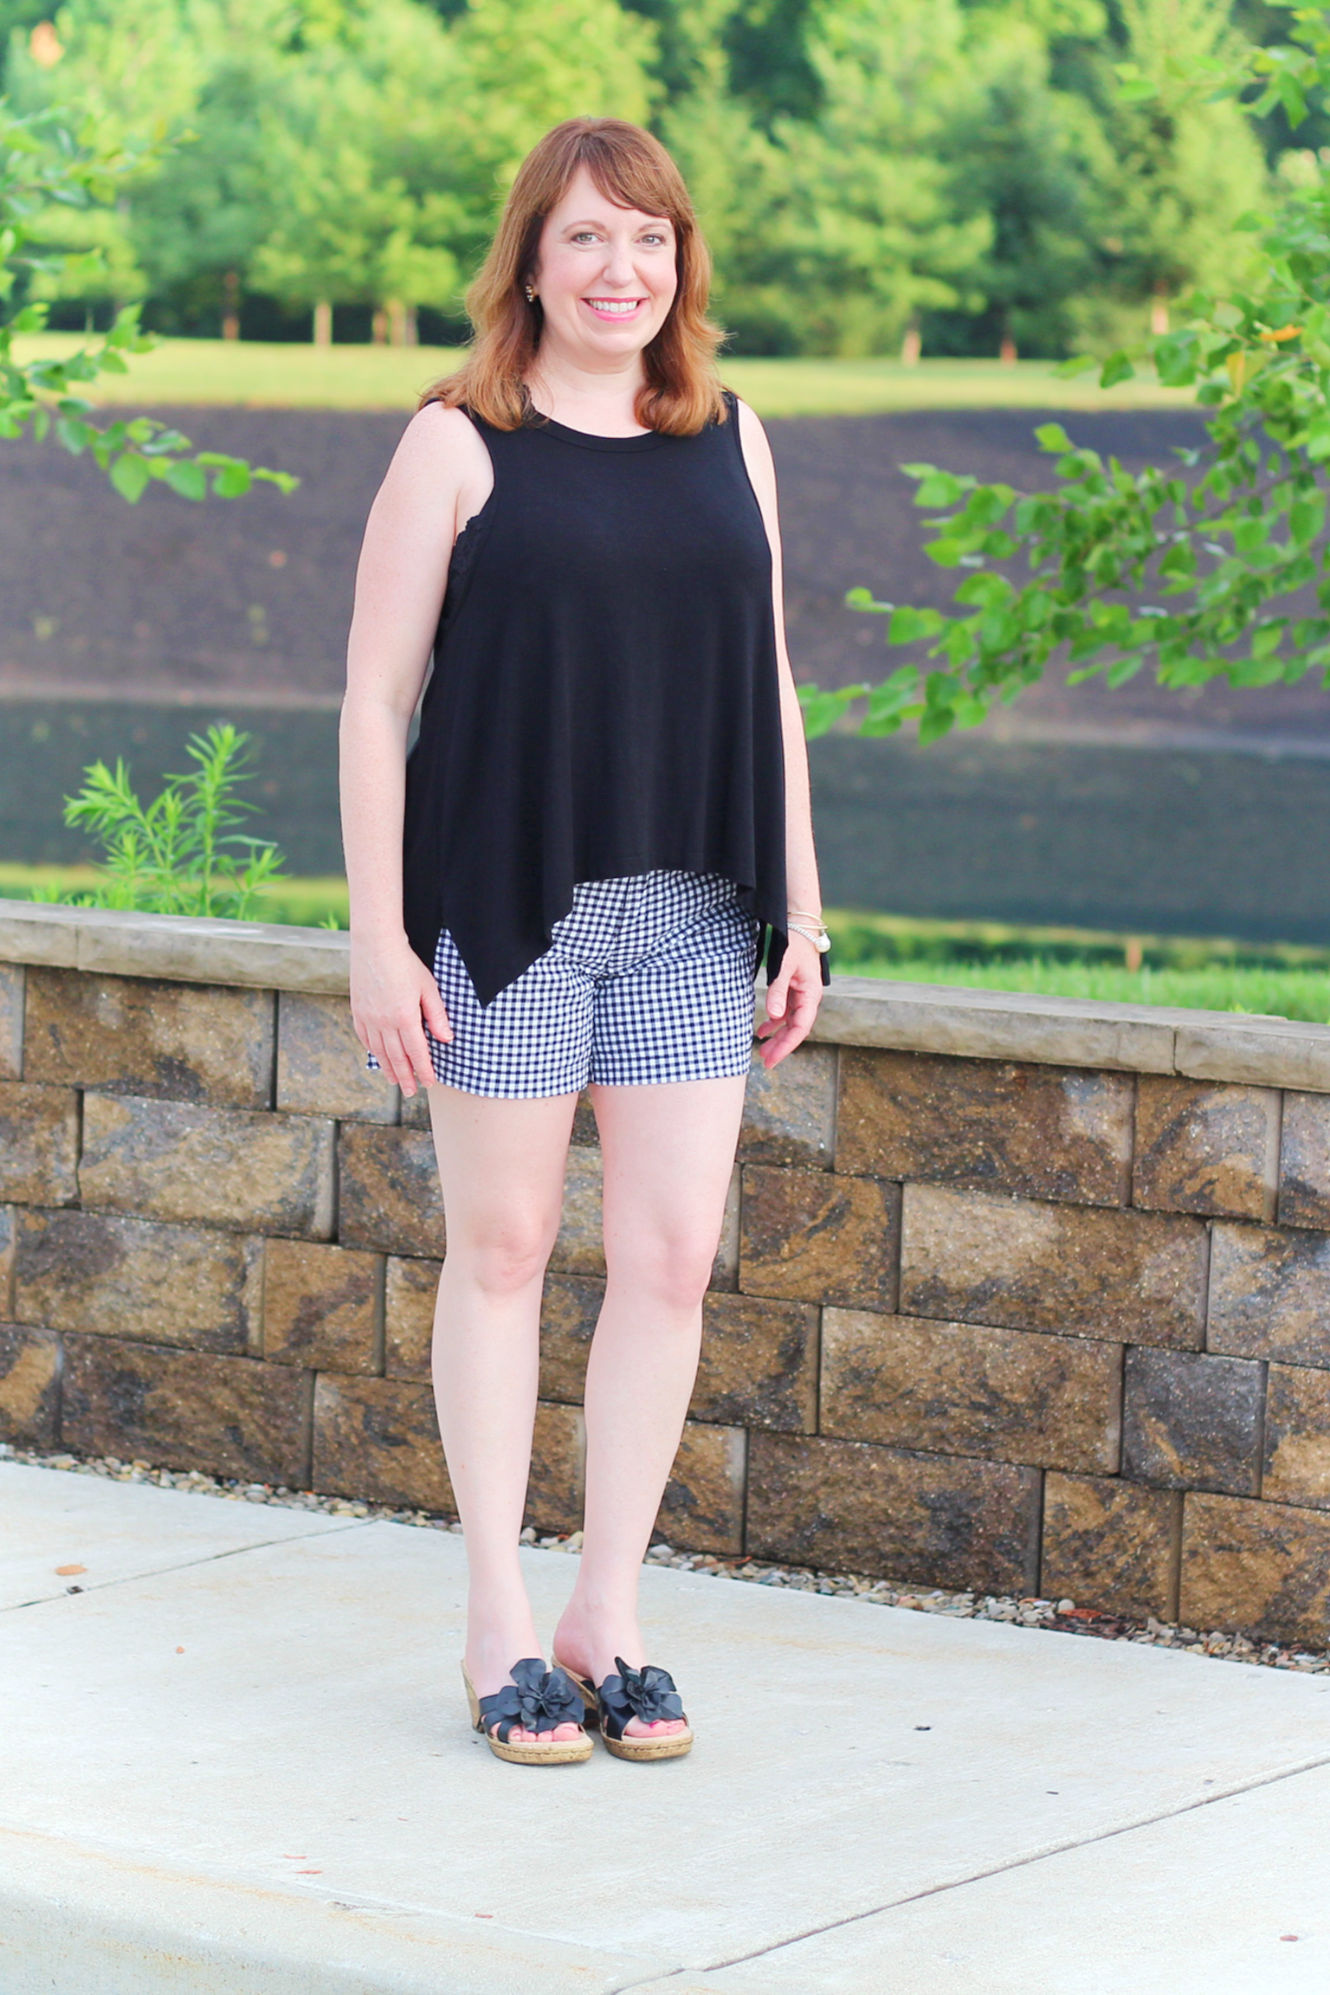 f54b7cc2fa8303 Black And White Shorts Outfit With A Bralette  fashionover40   fashionforwomenover40  summeroutfit  bralette